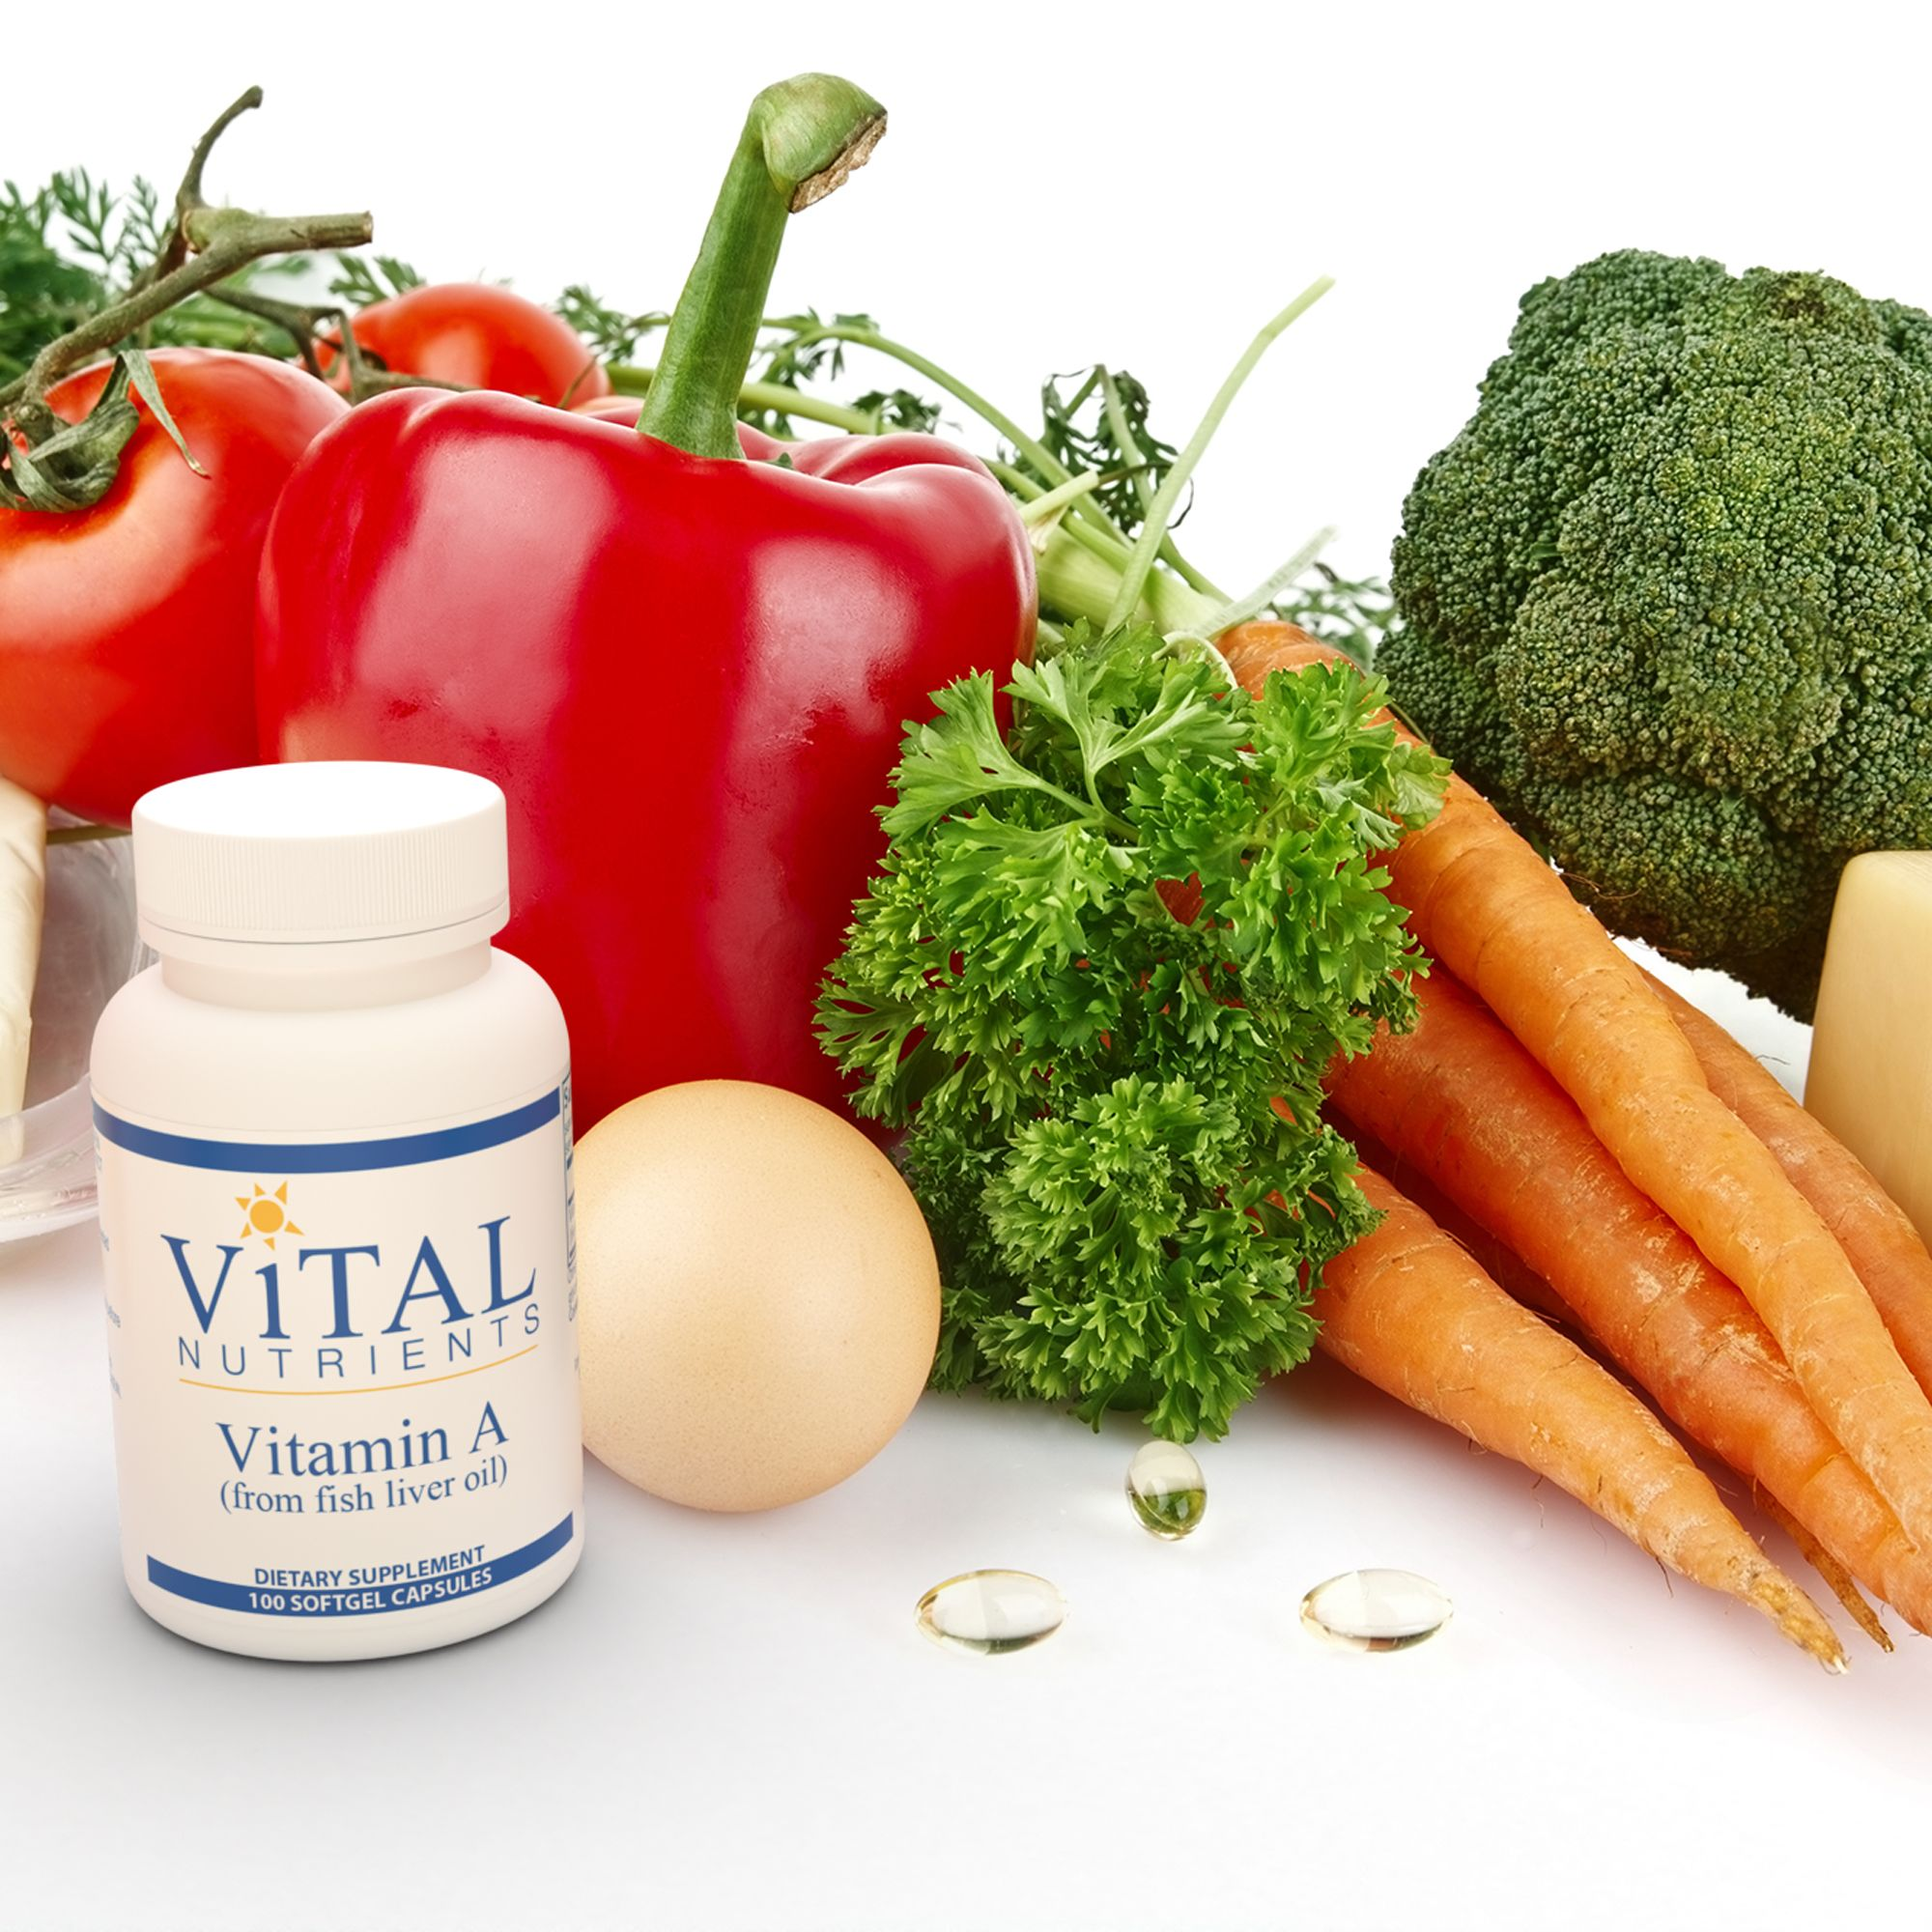 Are You Getting Enough Vitamin A Nutritional Supplements Vitamins Nutrition